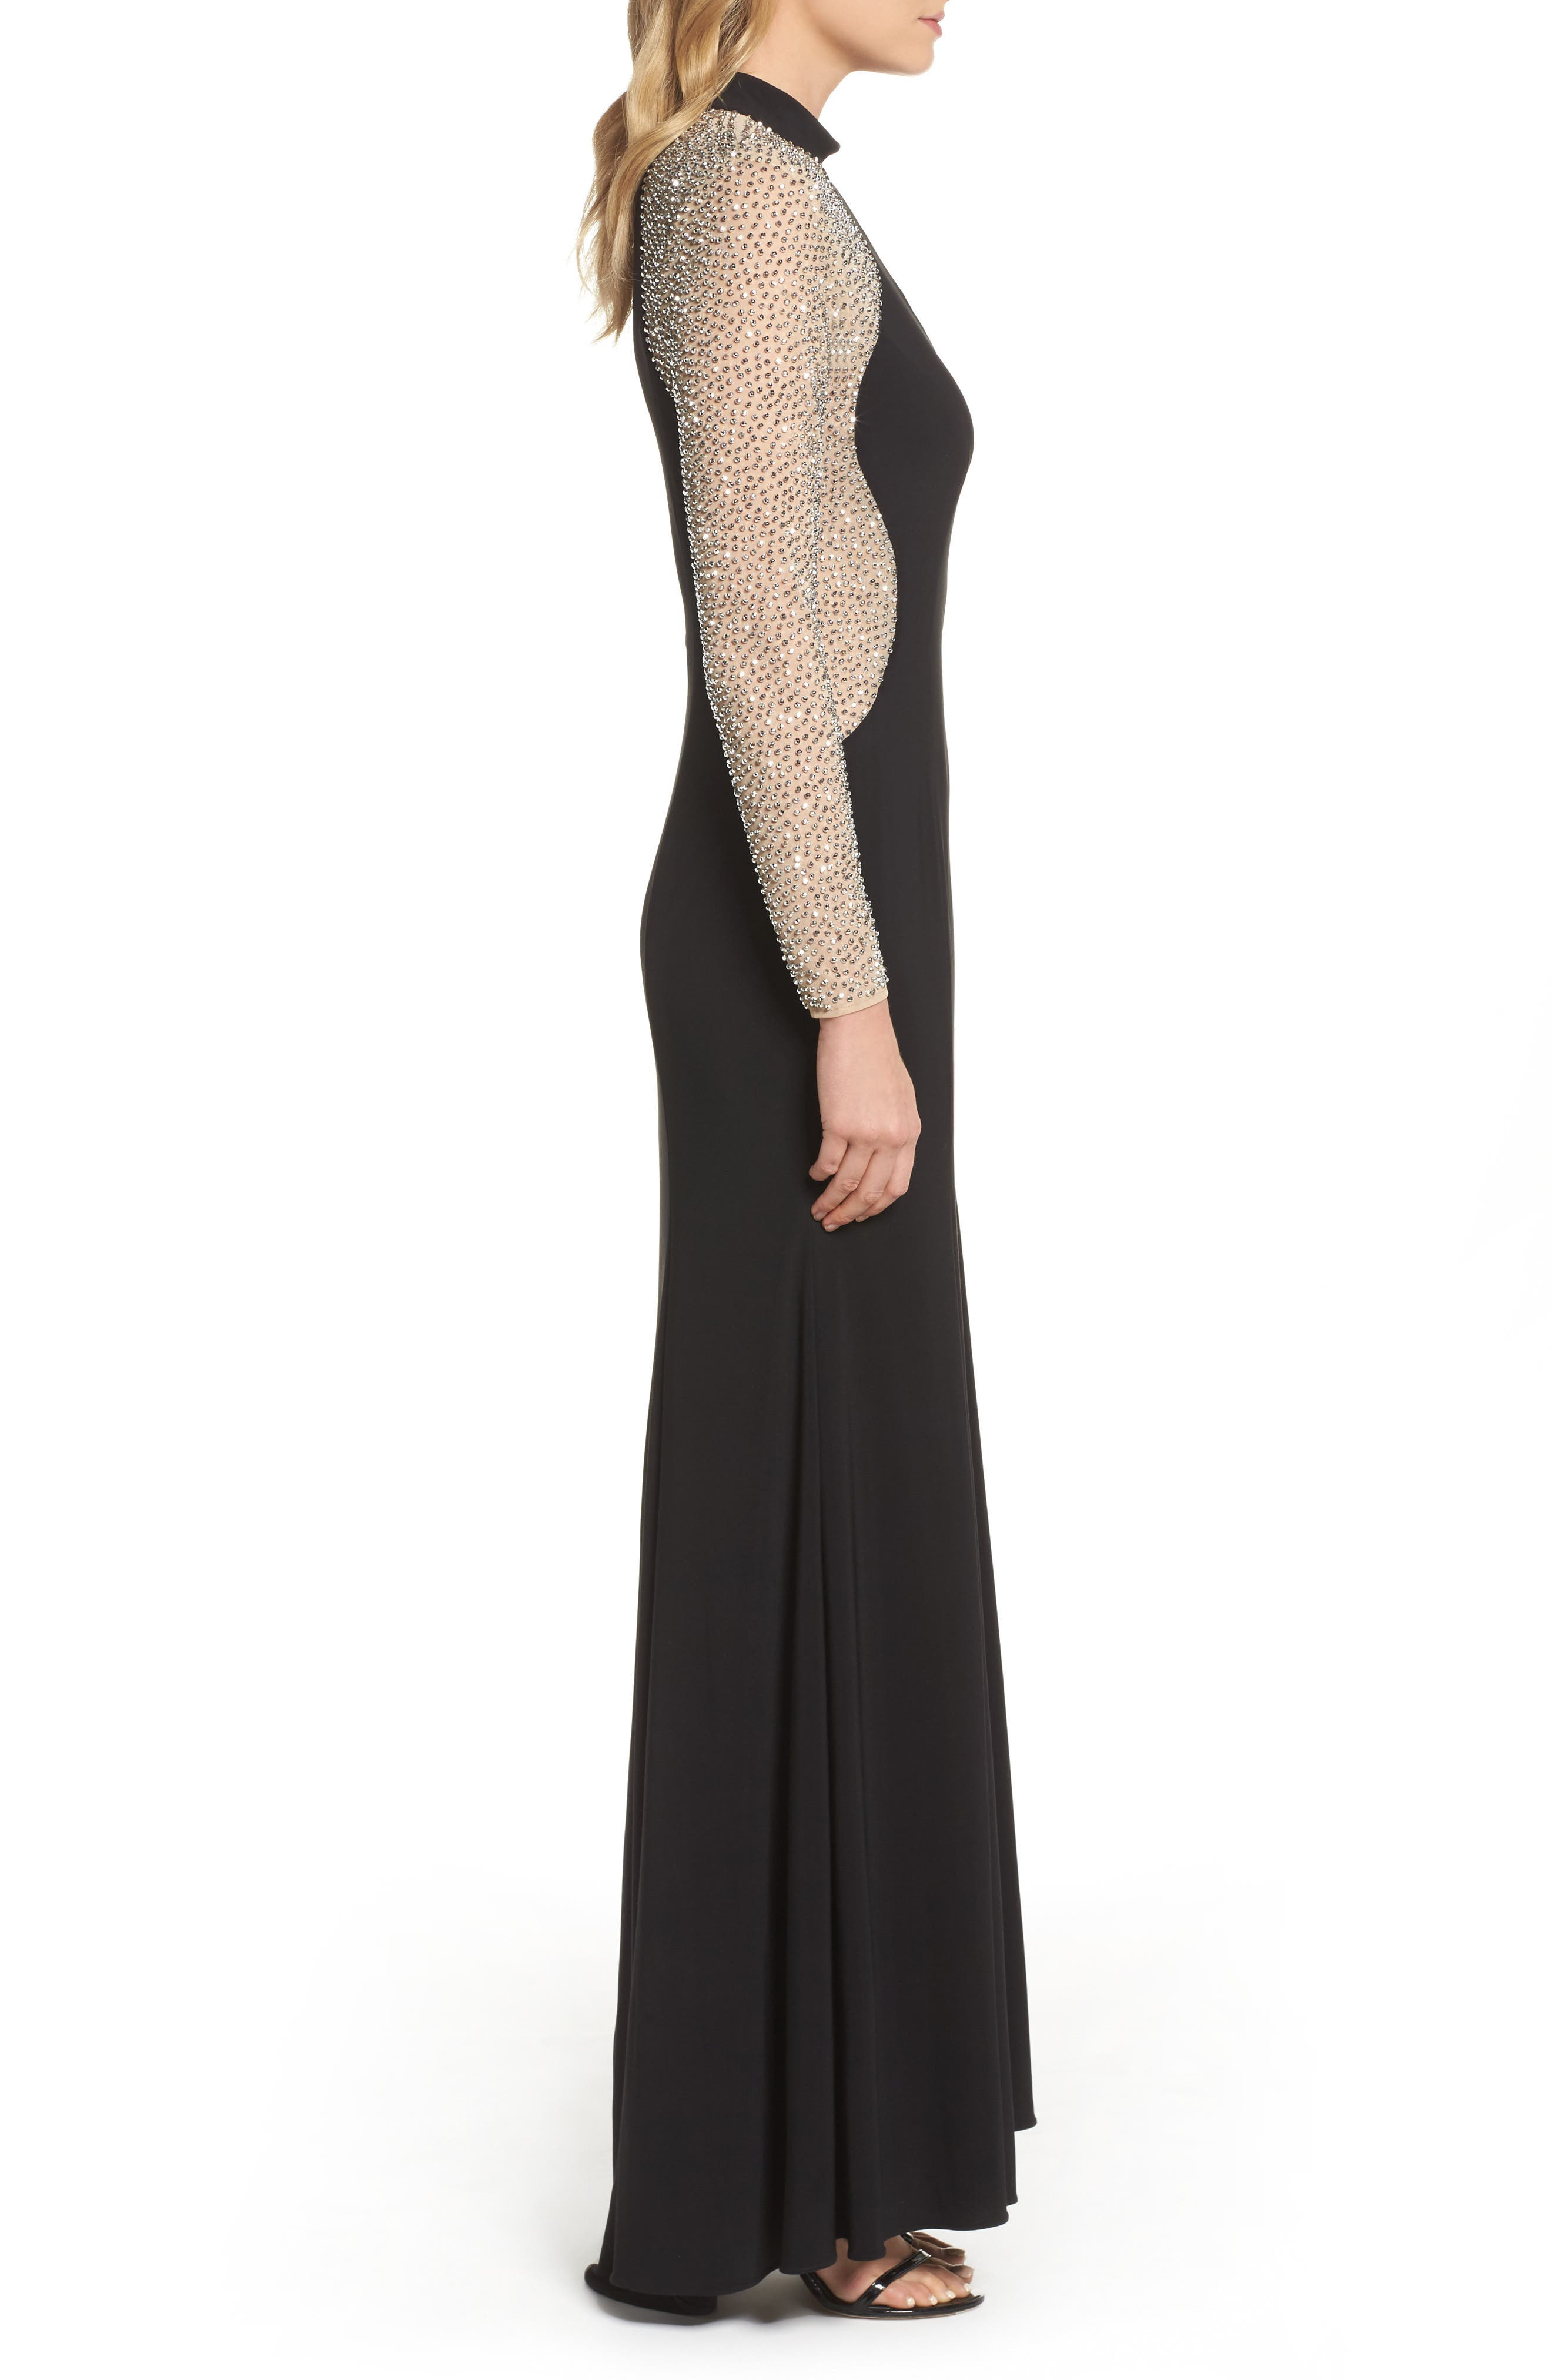 Beaded Choker Neck Gown,                             Alternate thumbnail 3, color,                             BLACK/ NUDE/ SILVER